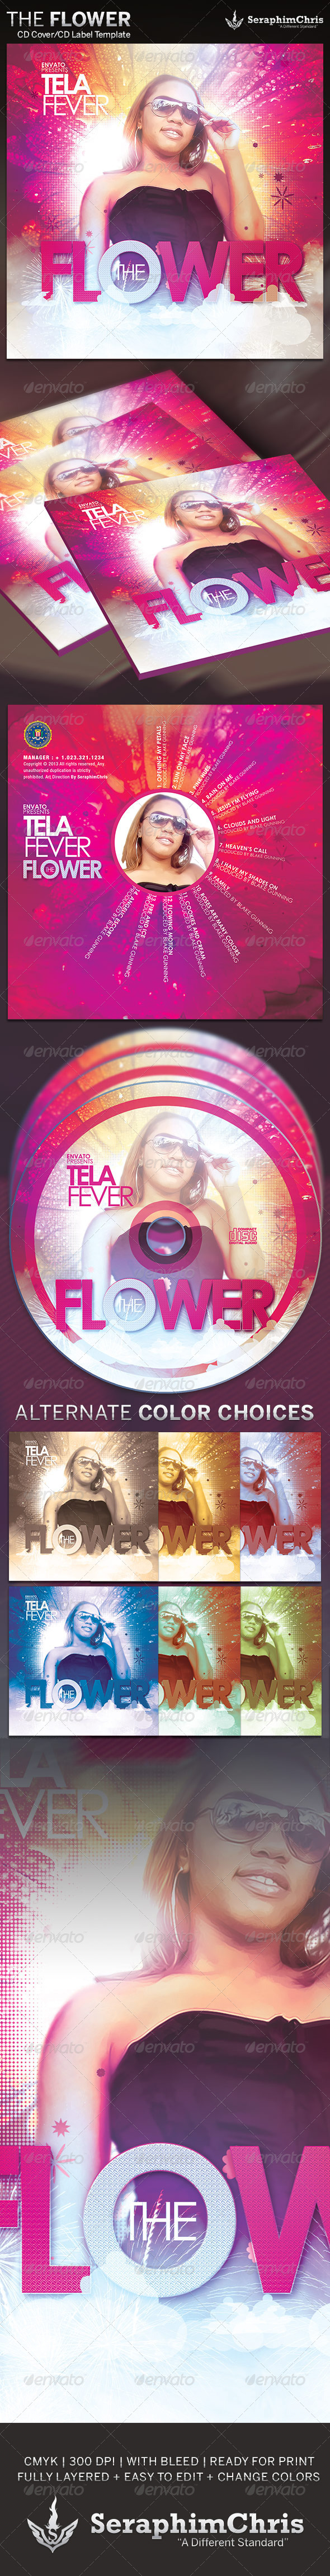 GraphicRiver The Flower CD Cover Artwork Template 4213477